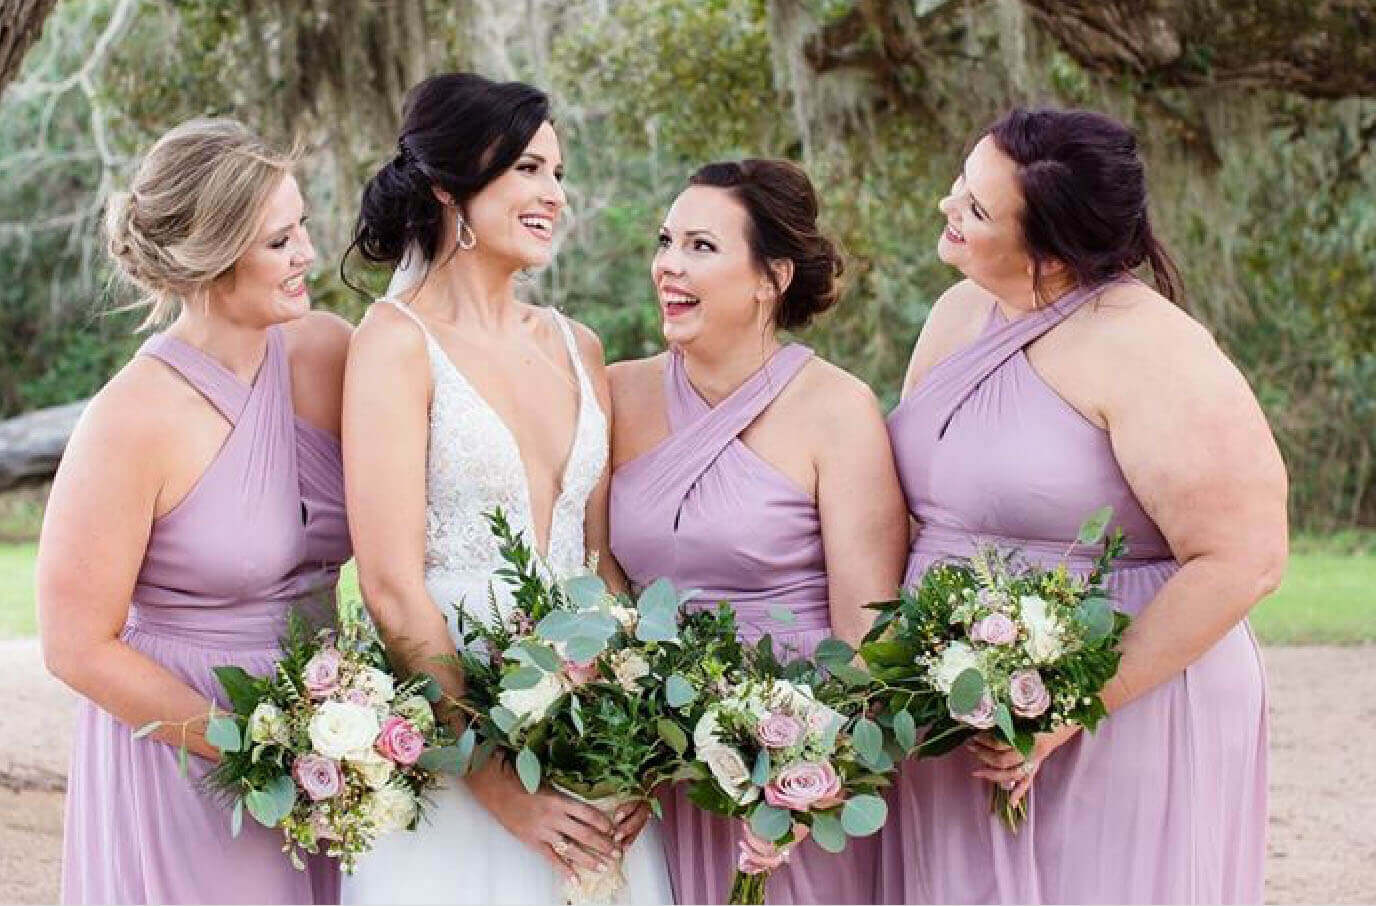 Photo of the bride and bridesmaids wearing purple dresses